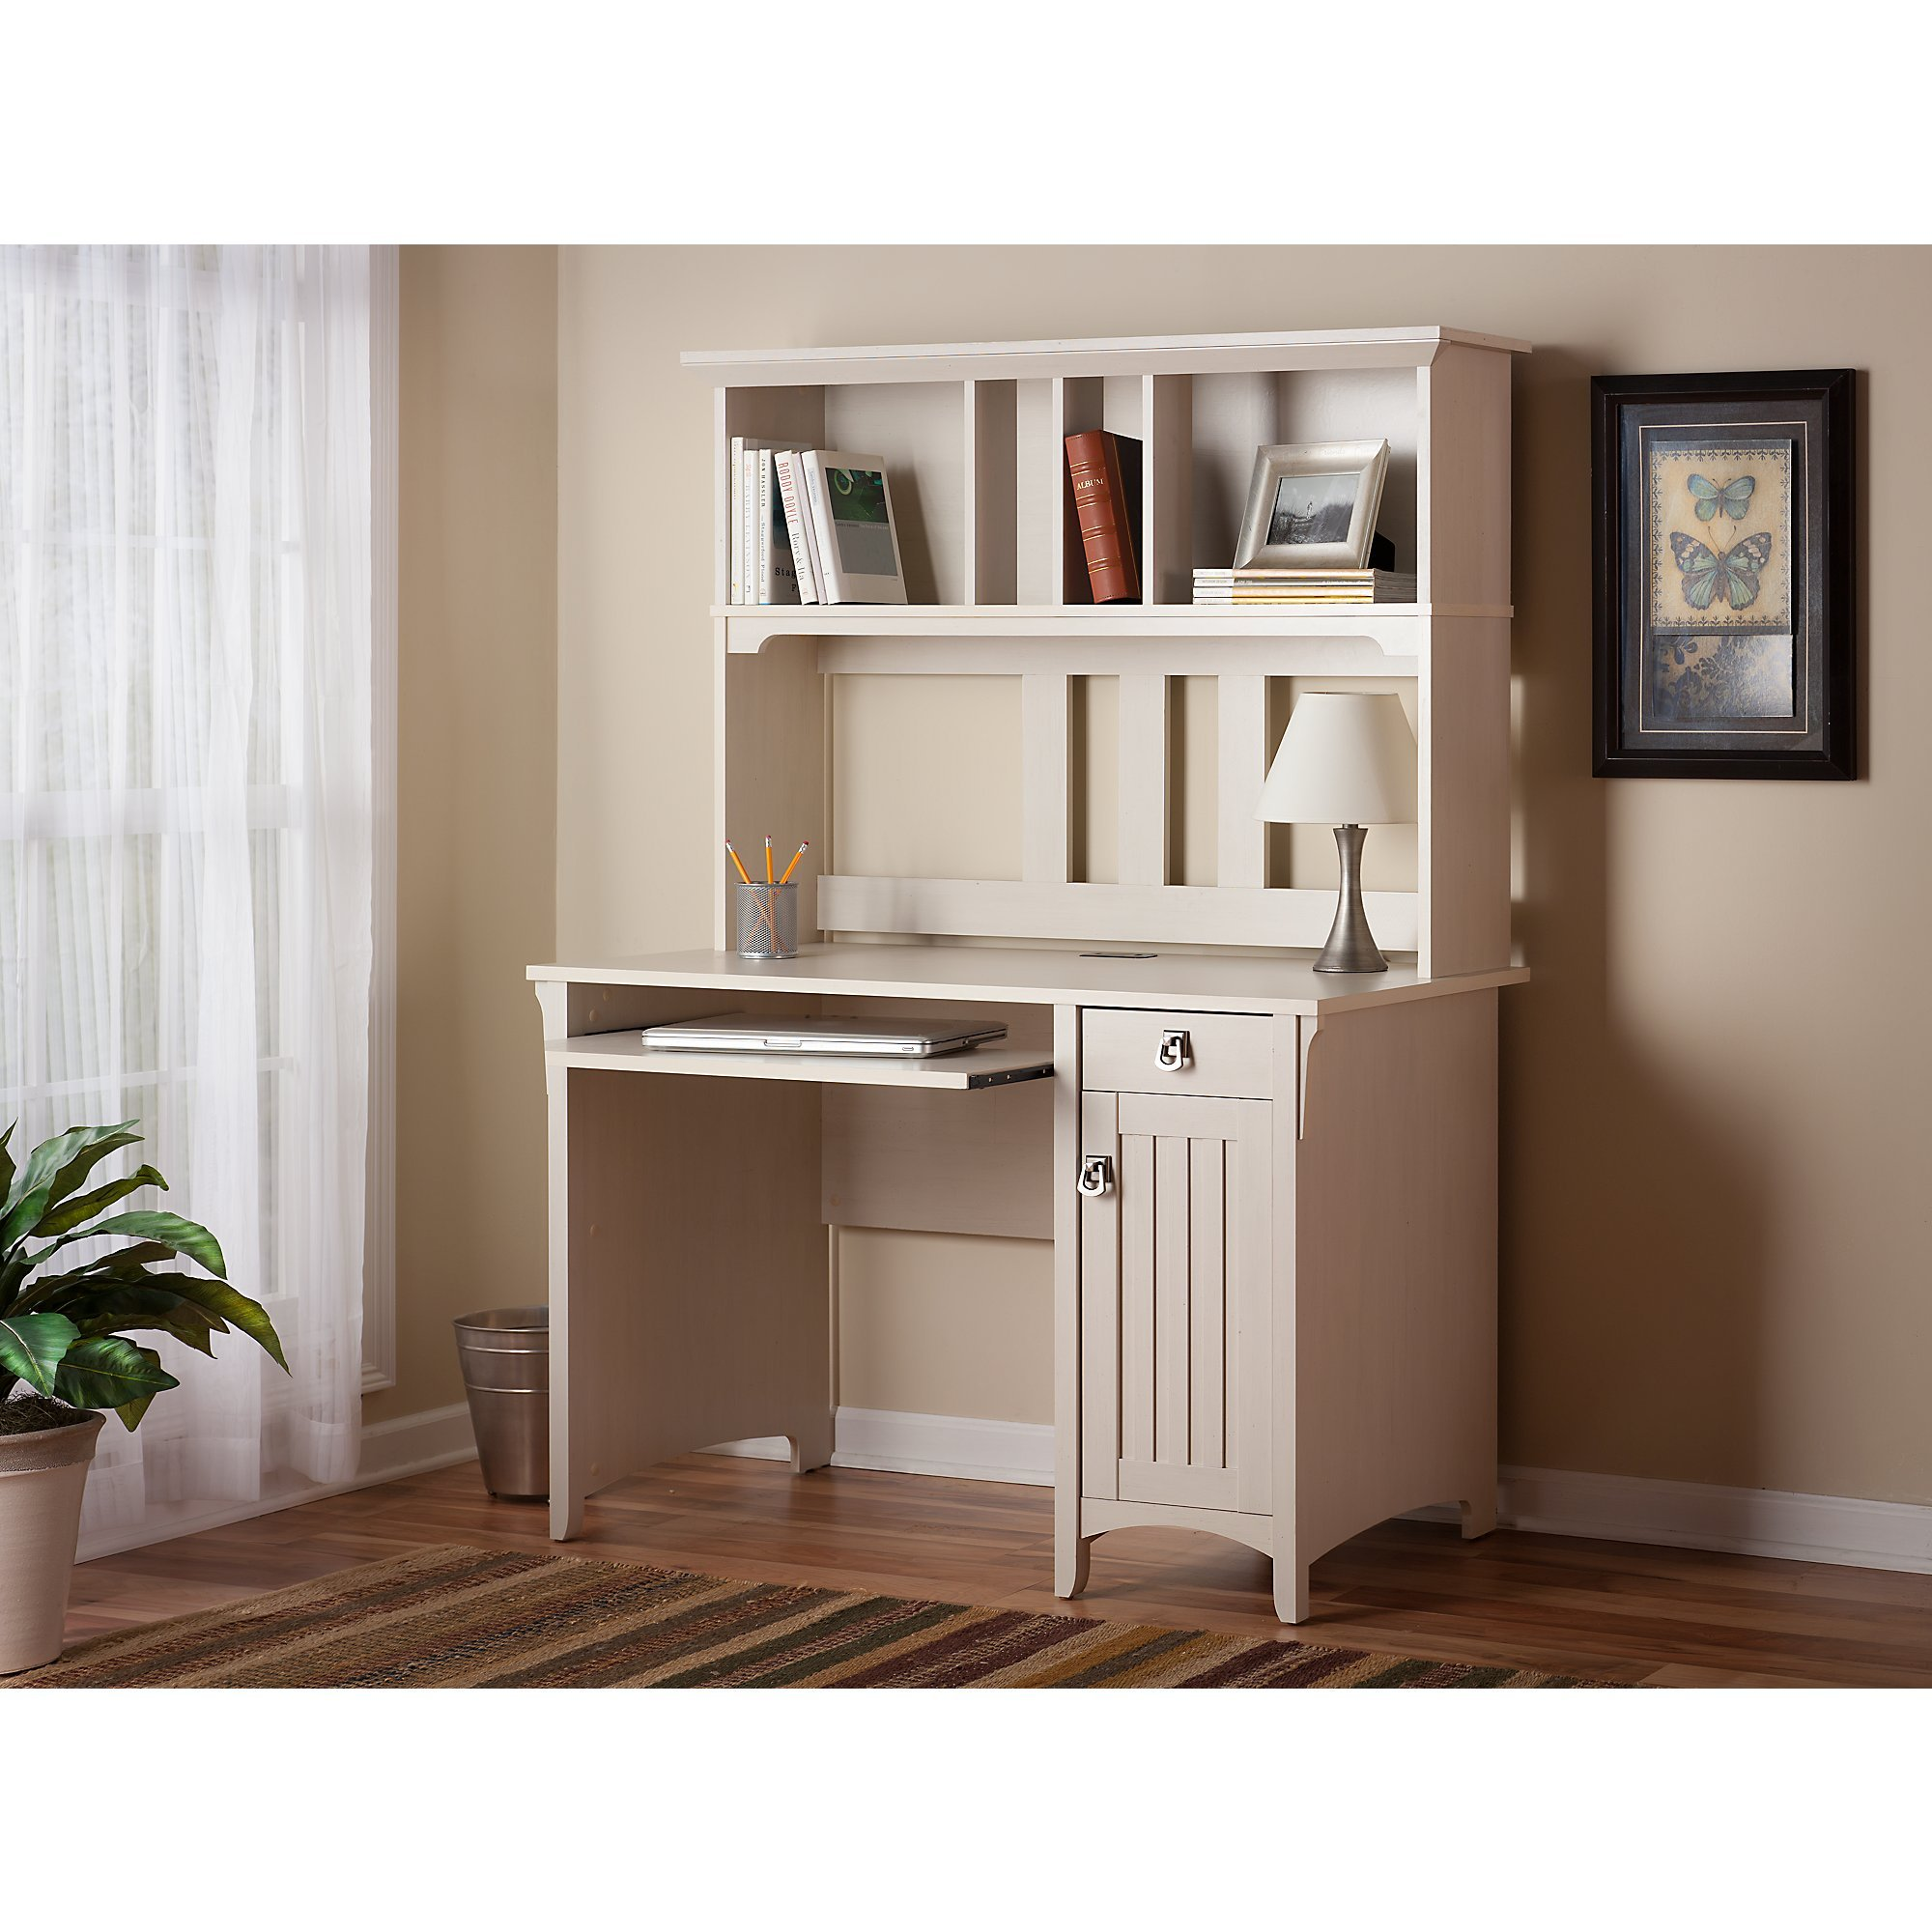 Salinas Mission Style Desk with Hutch in Antique White